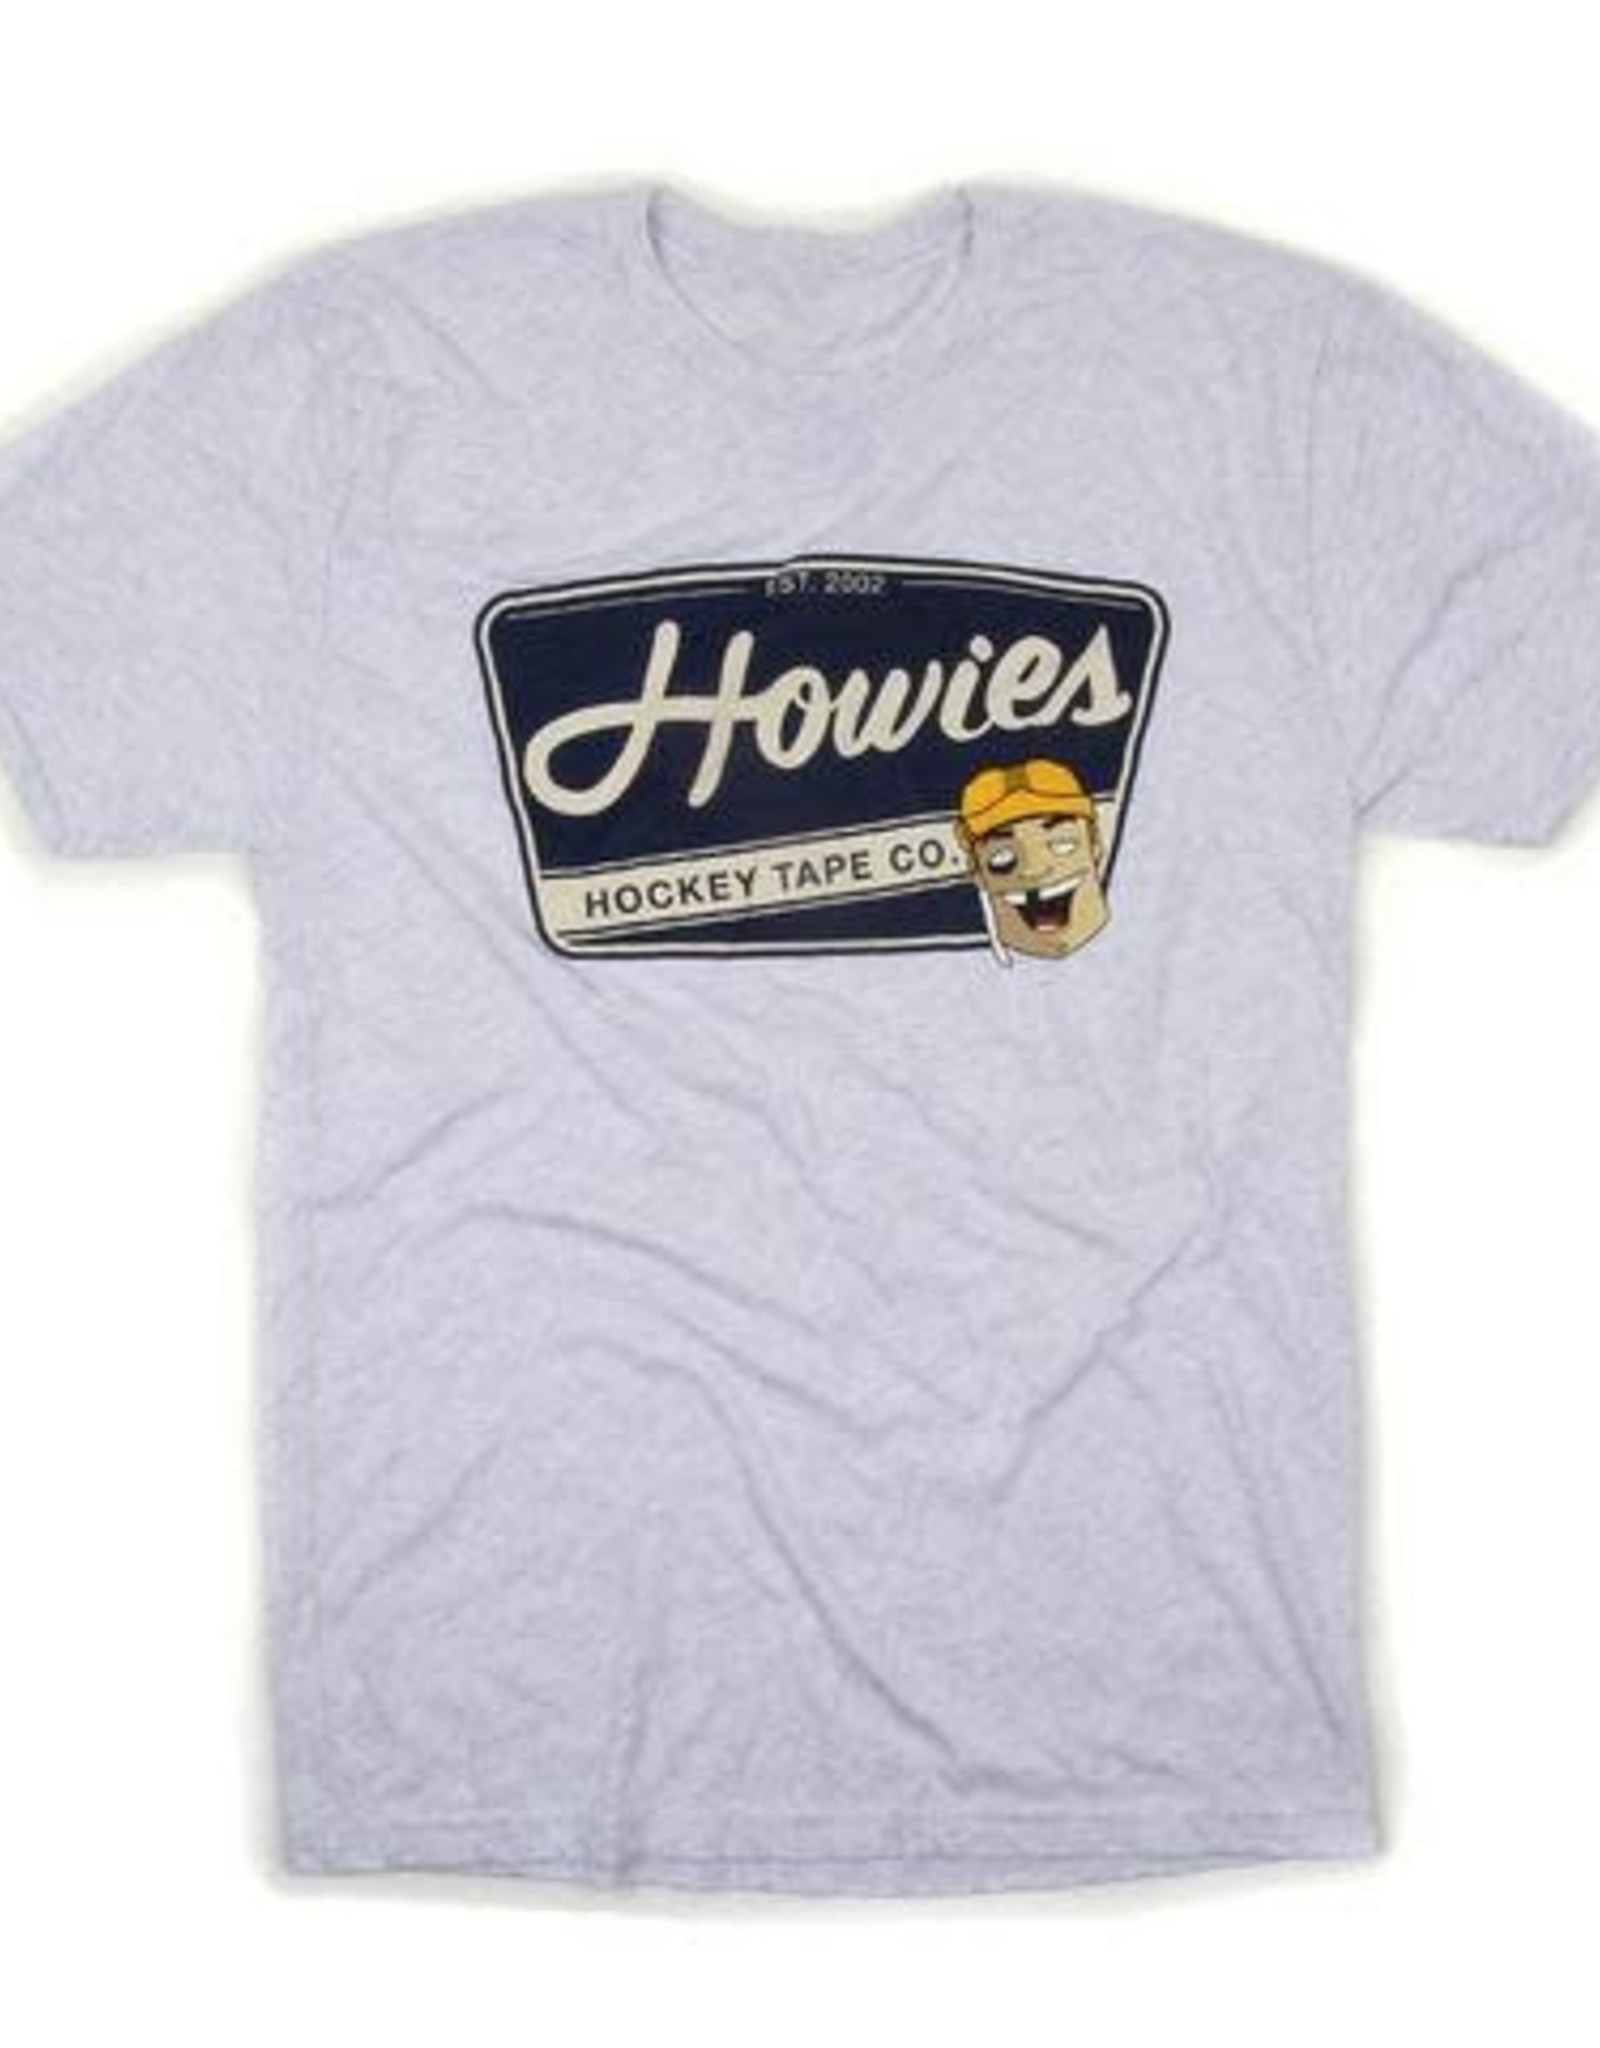 Howies Howies One-T Shirt (Heather White)